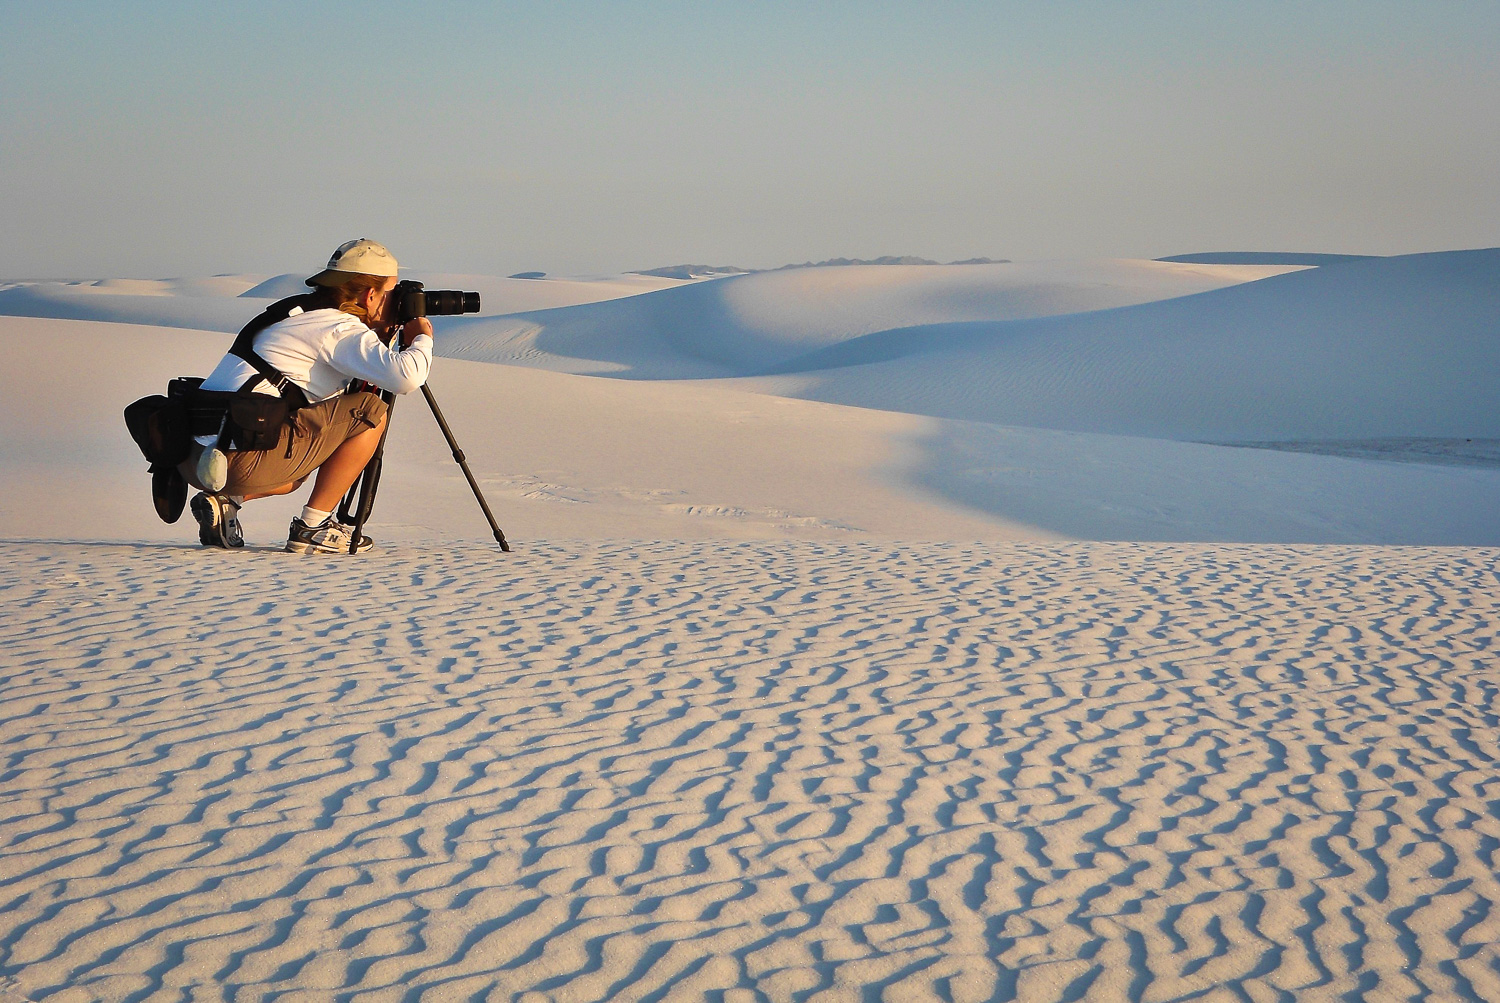 https://i1.wp.com/digital-photography-school.com/wp-content/uploads/2018/07/anne_using_a_tripod_at_white_sands_national_monument.jpg?resize=1500%2C1003&ssl=1